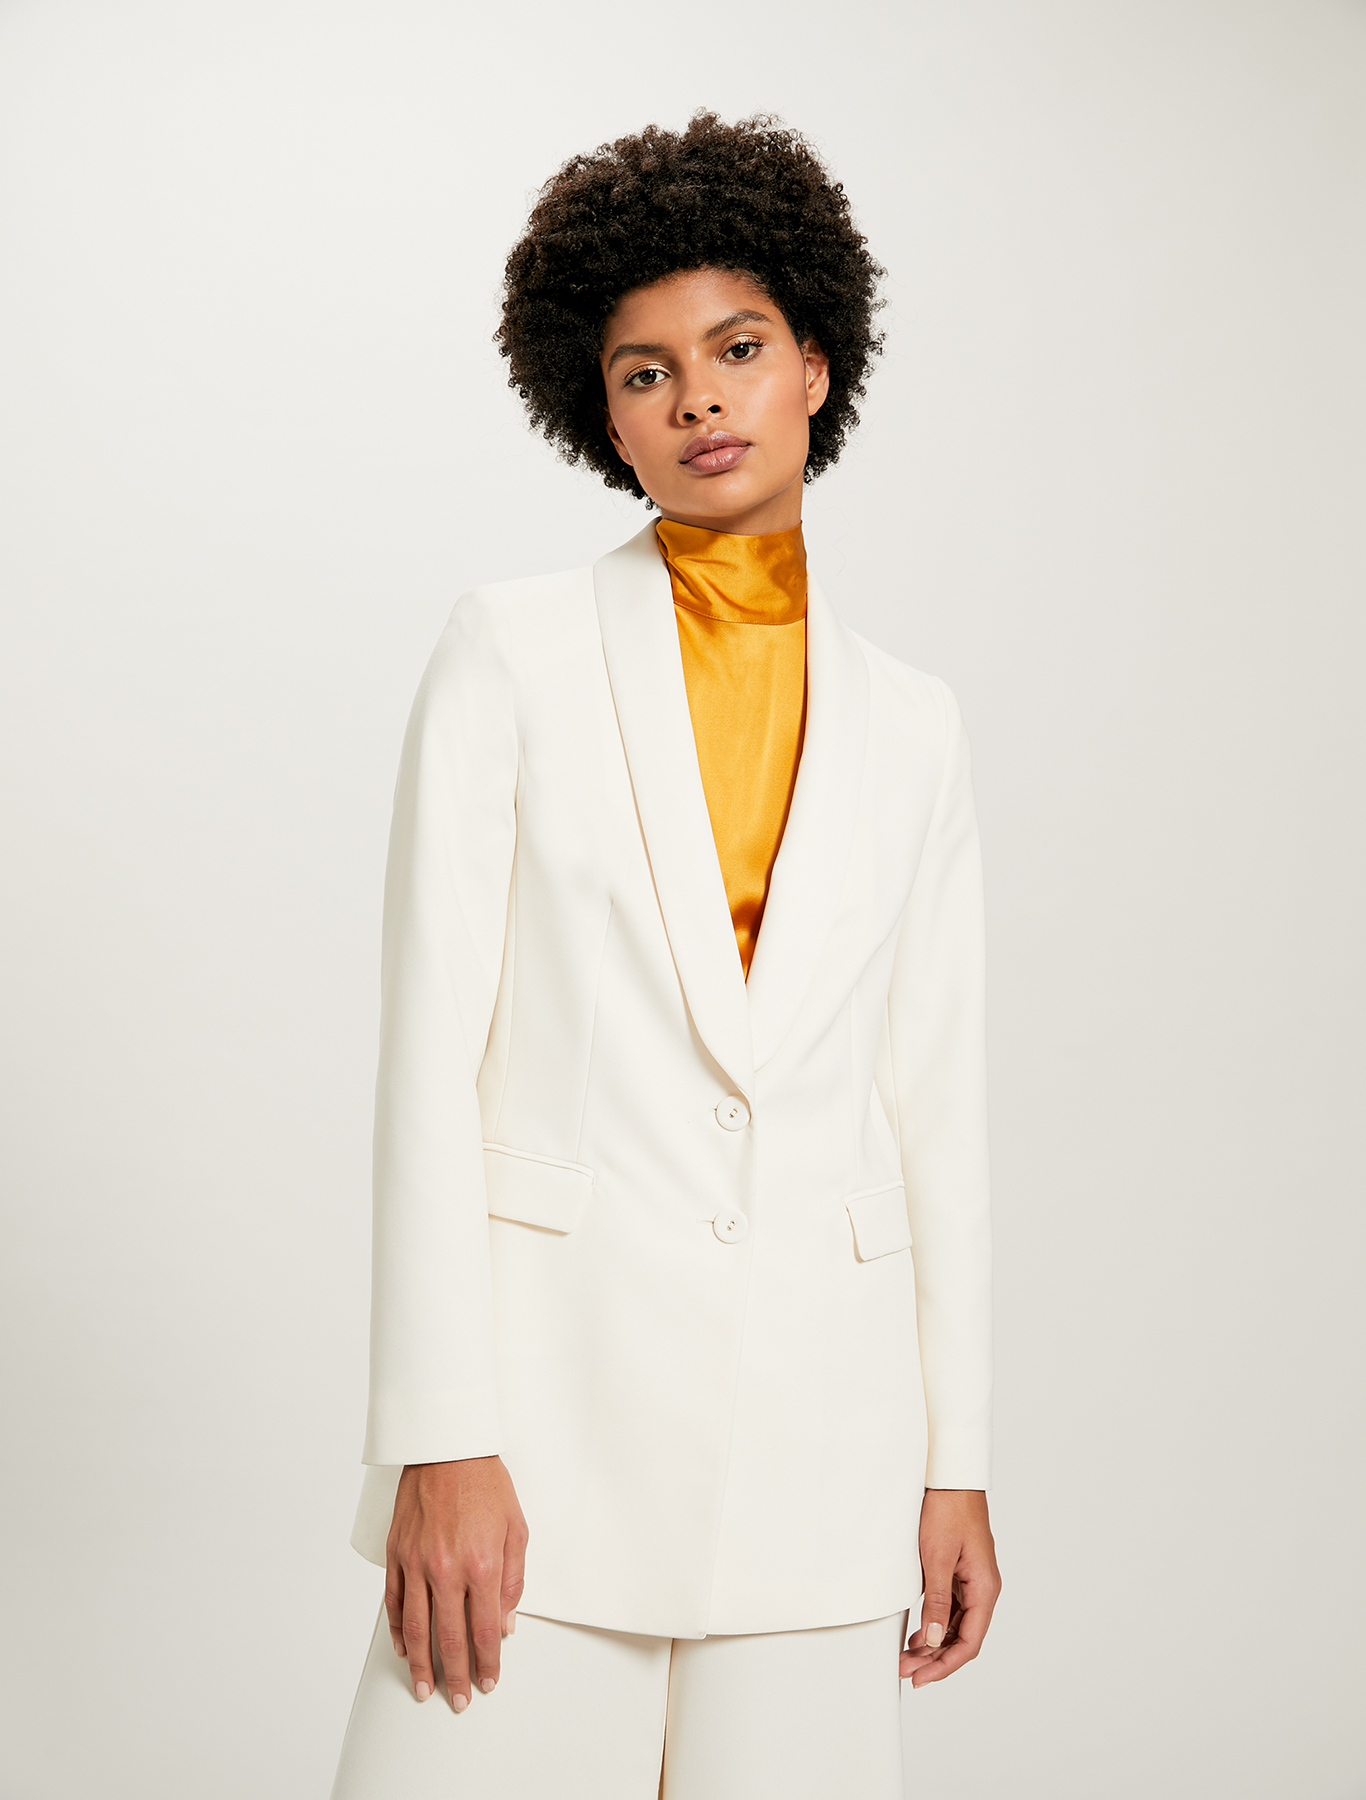 Smoking jacket with satin lapels - ivory - pennyblack